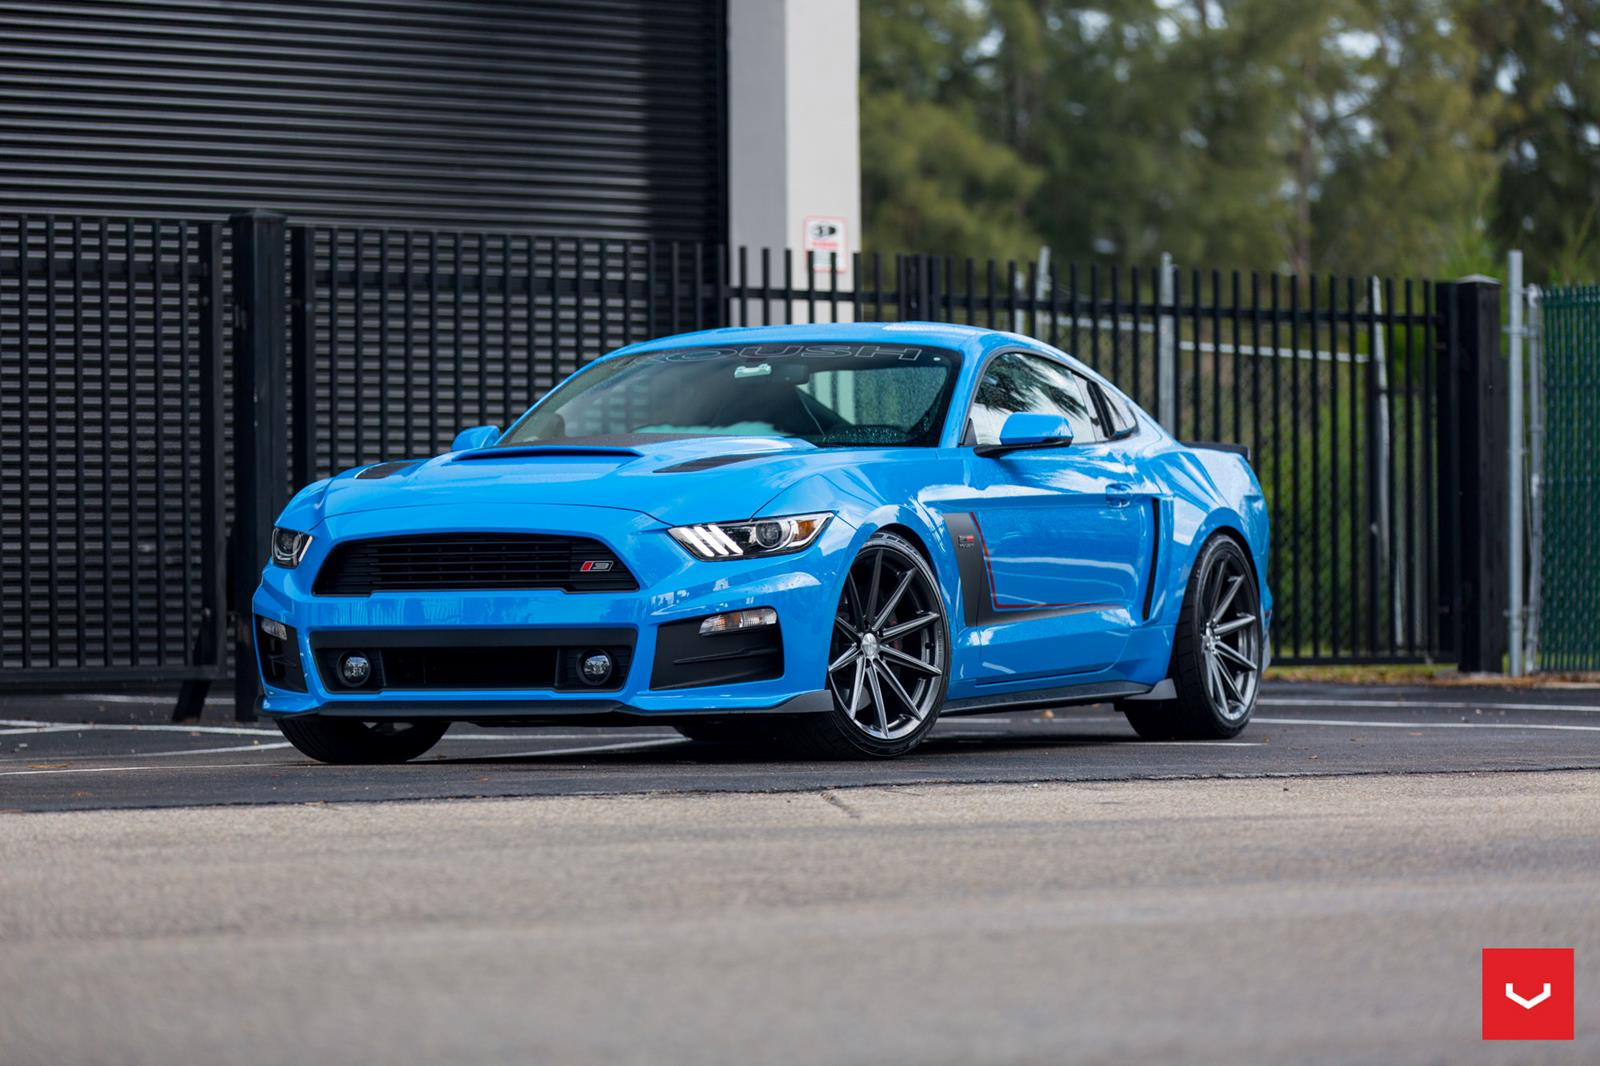 abber-blue-ford-mustang-gtpp-roush-s550-vossen-vfs10-hybrid-forged-gloss-graphite-concave-wheels.jpg